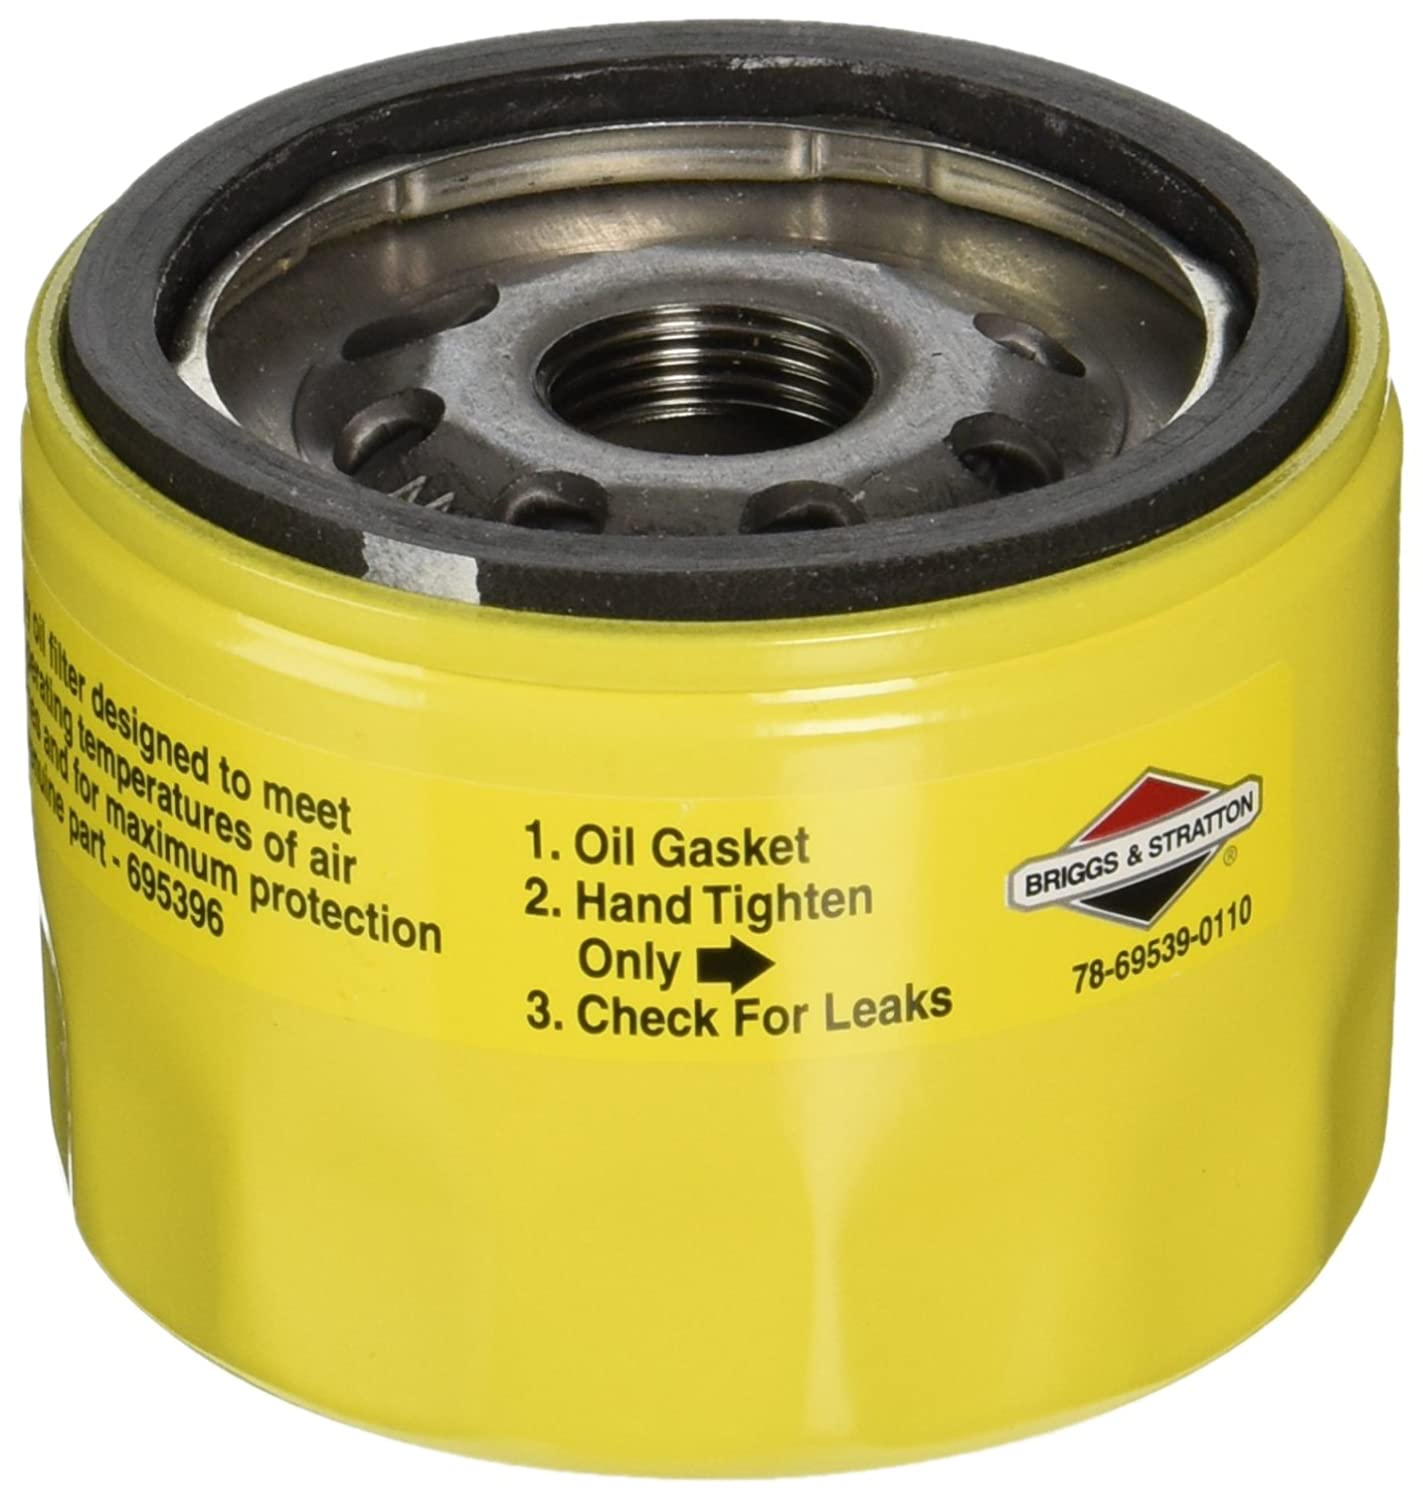 briggs stratton 696854 oil filter replacement for models. Black Bedroom Furniture Sets. Home Design Ideas